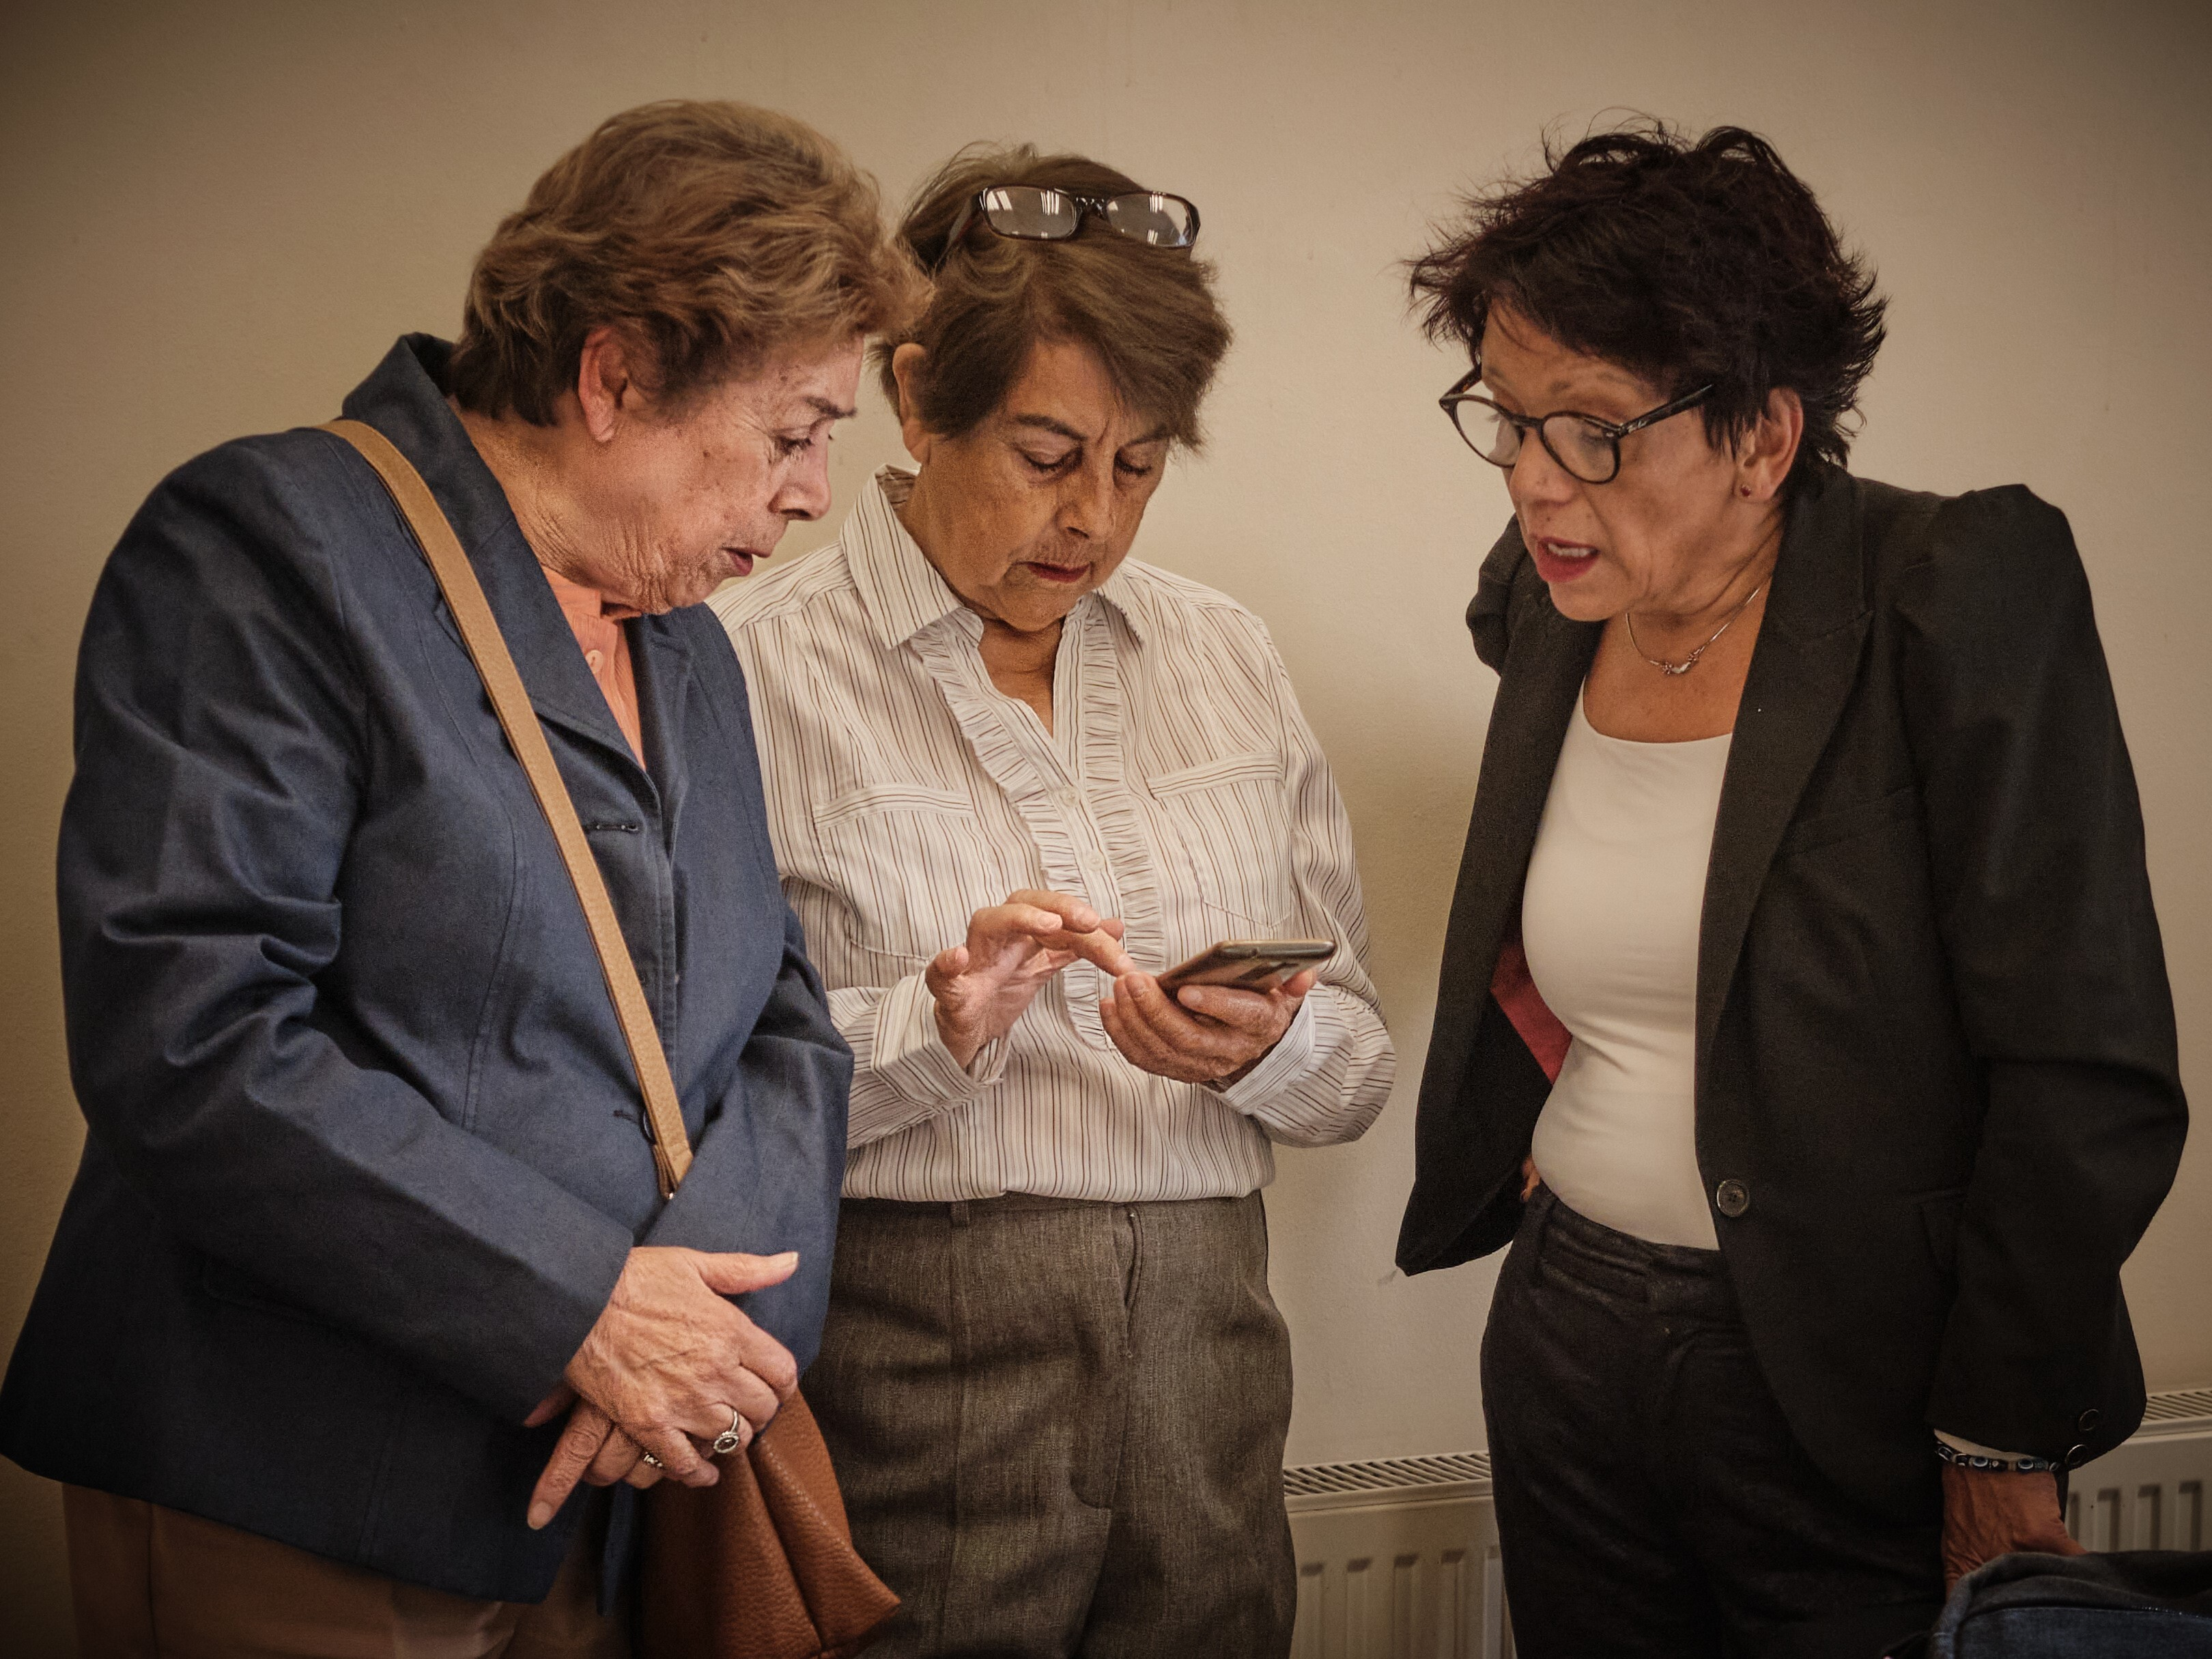 Three women dressed smartly, two in blazers and the middle one in a smart white shirt, are shown looking at a phone in a classroom in Santiago, Chile. They are all in their 50s or 60s.